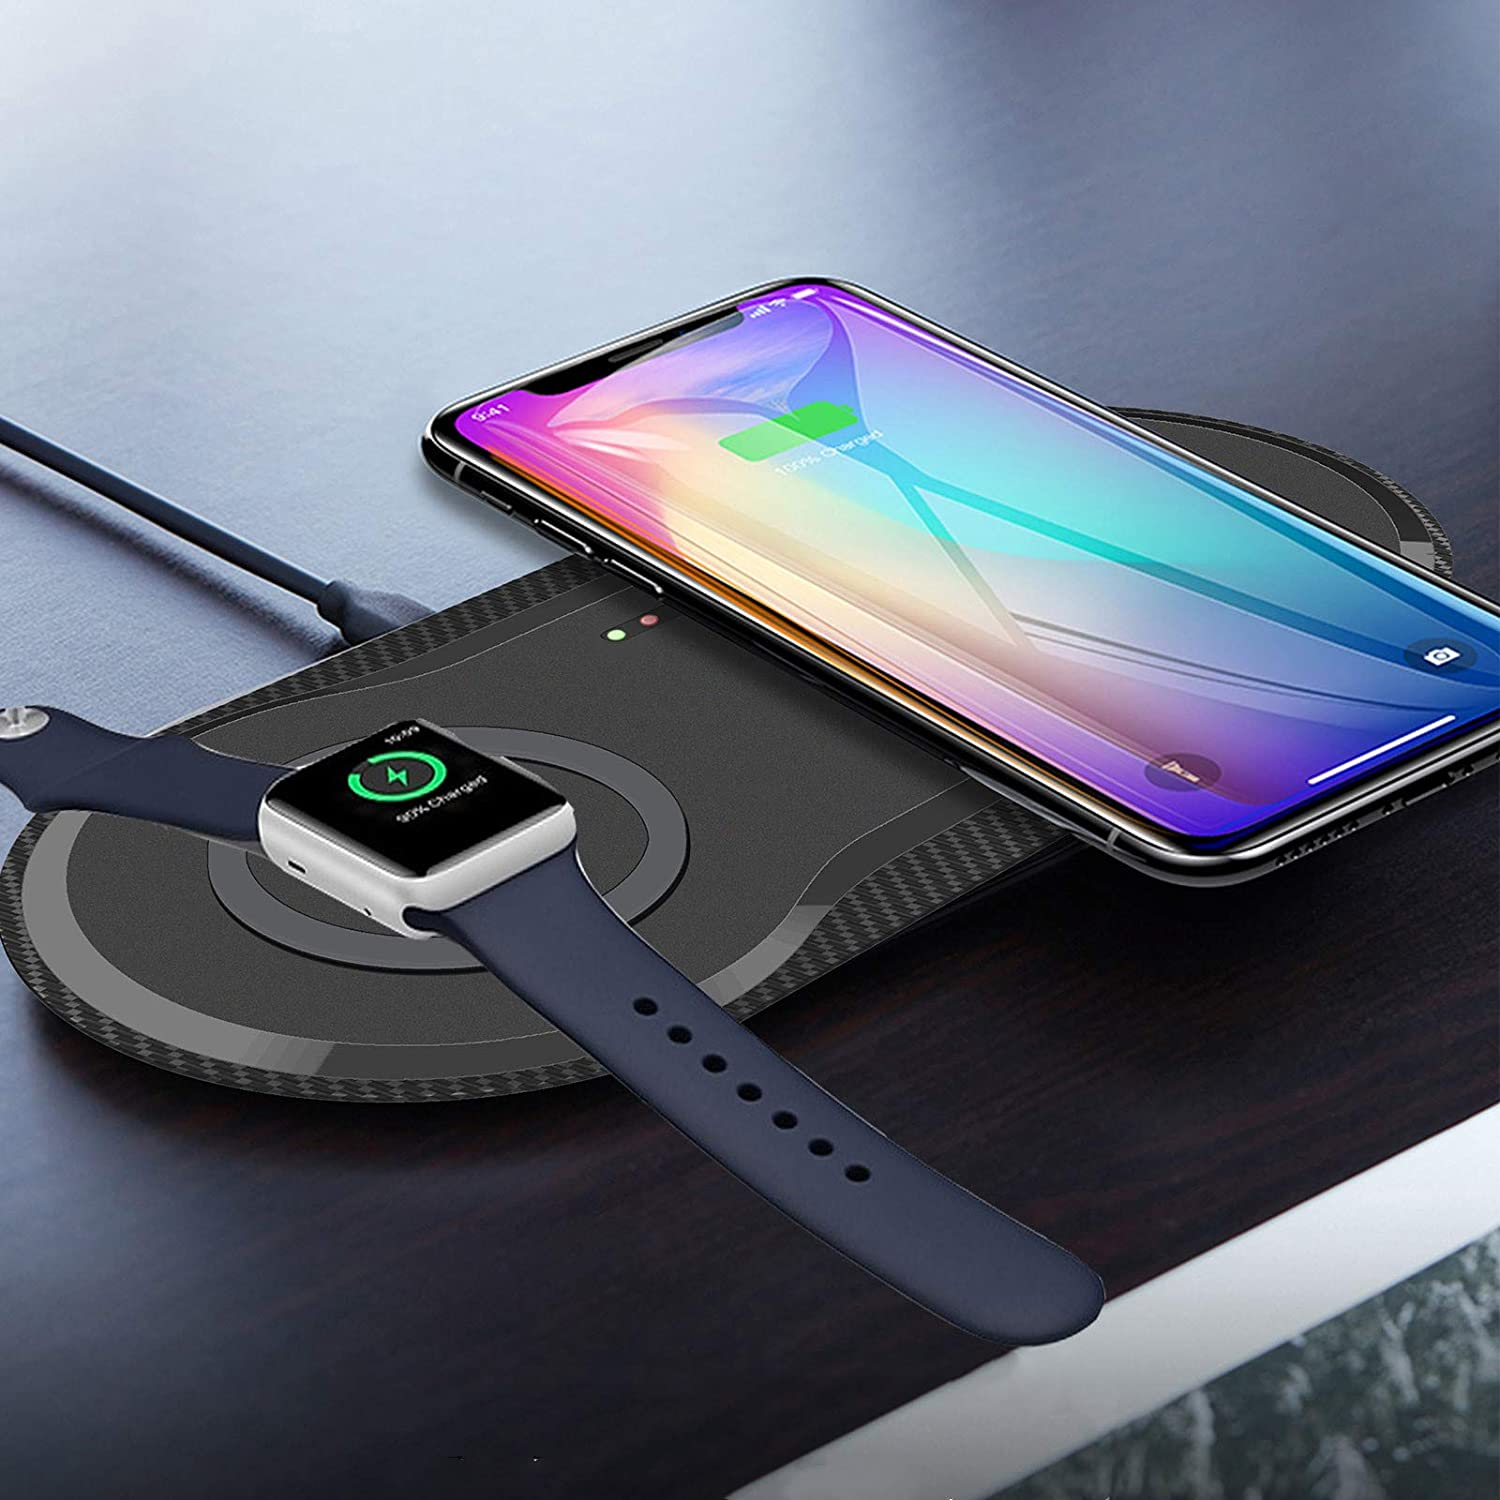 Finderomend 10W Dual Wireless Charger 2 in 1 Dual Wireless Charging Pad, Portable Charging Station, Compatible with iPhone 12 Pro Max/12 Mini/11/11 Pro Max/Se/Airpods Pro/2, All Qi-Enabled Phones